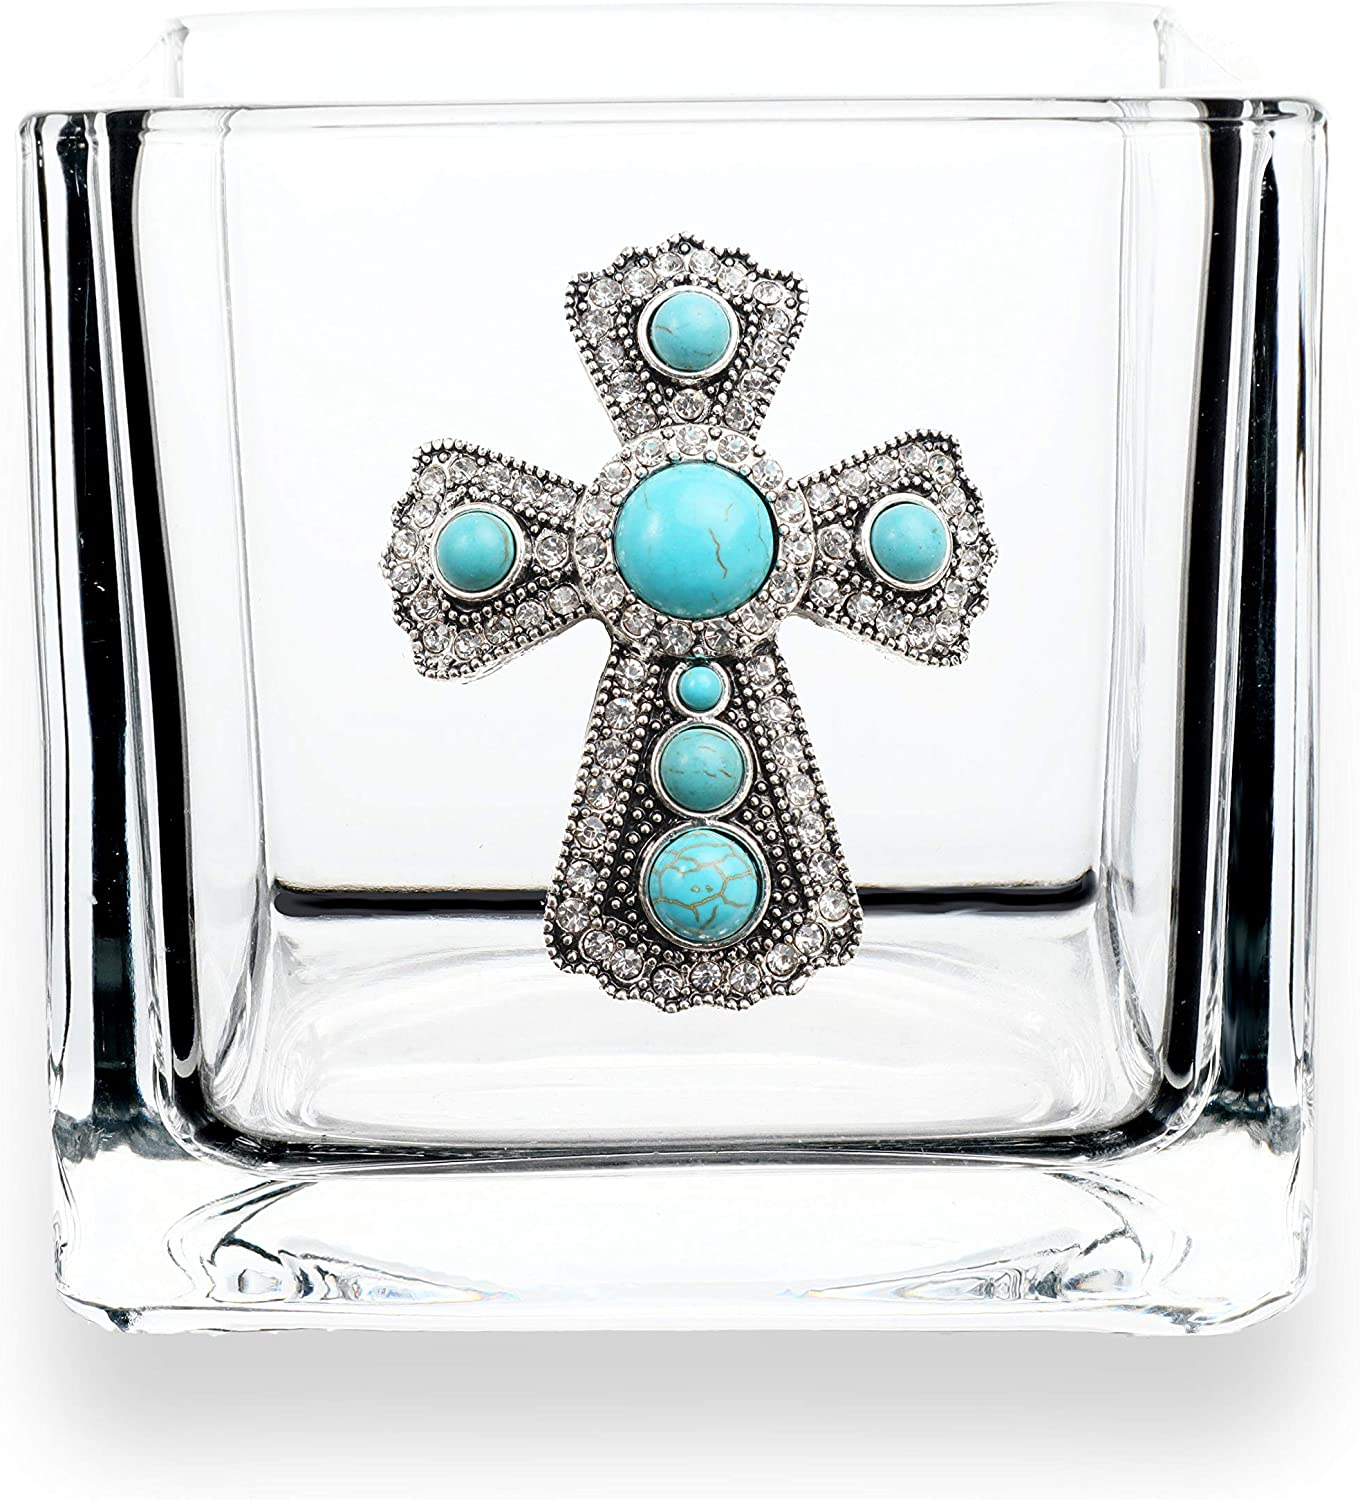 THE QUEENS' JEWELS Turquoise Cross Jeweled 4x4 Candleholder Vase - Unique Gift for Women, Birthday, Cute, Fun, Not Painted, Decorated, Bling, Bedazzled, Rhinestone